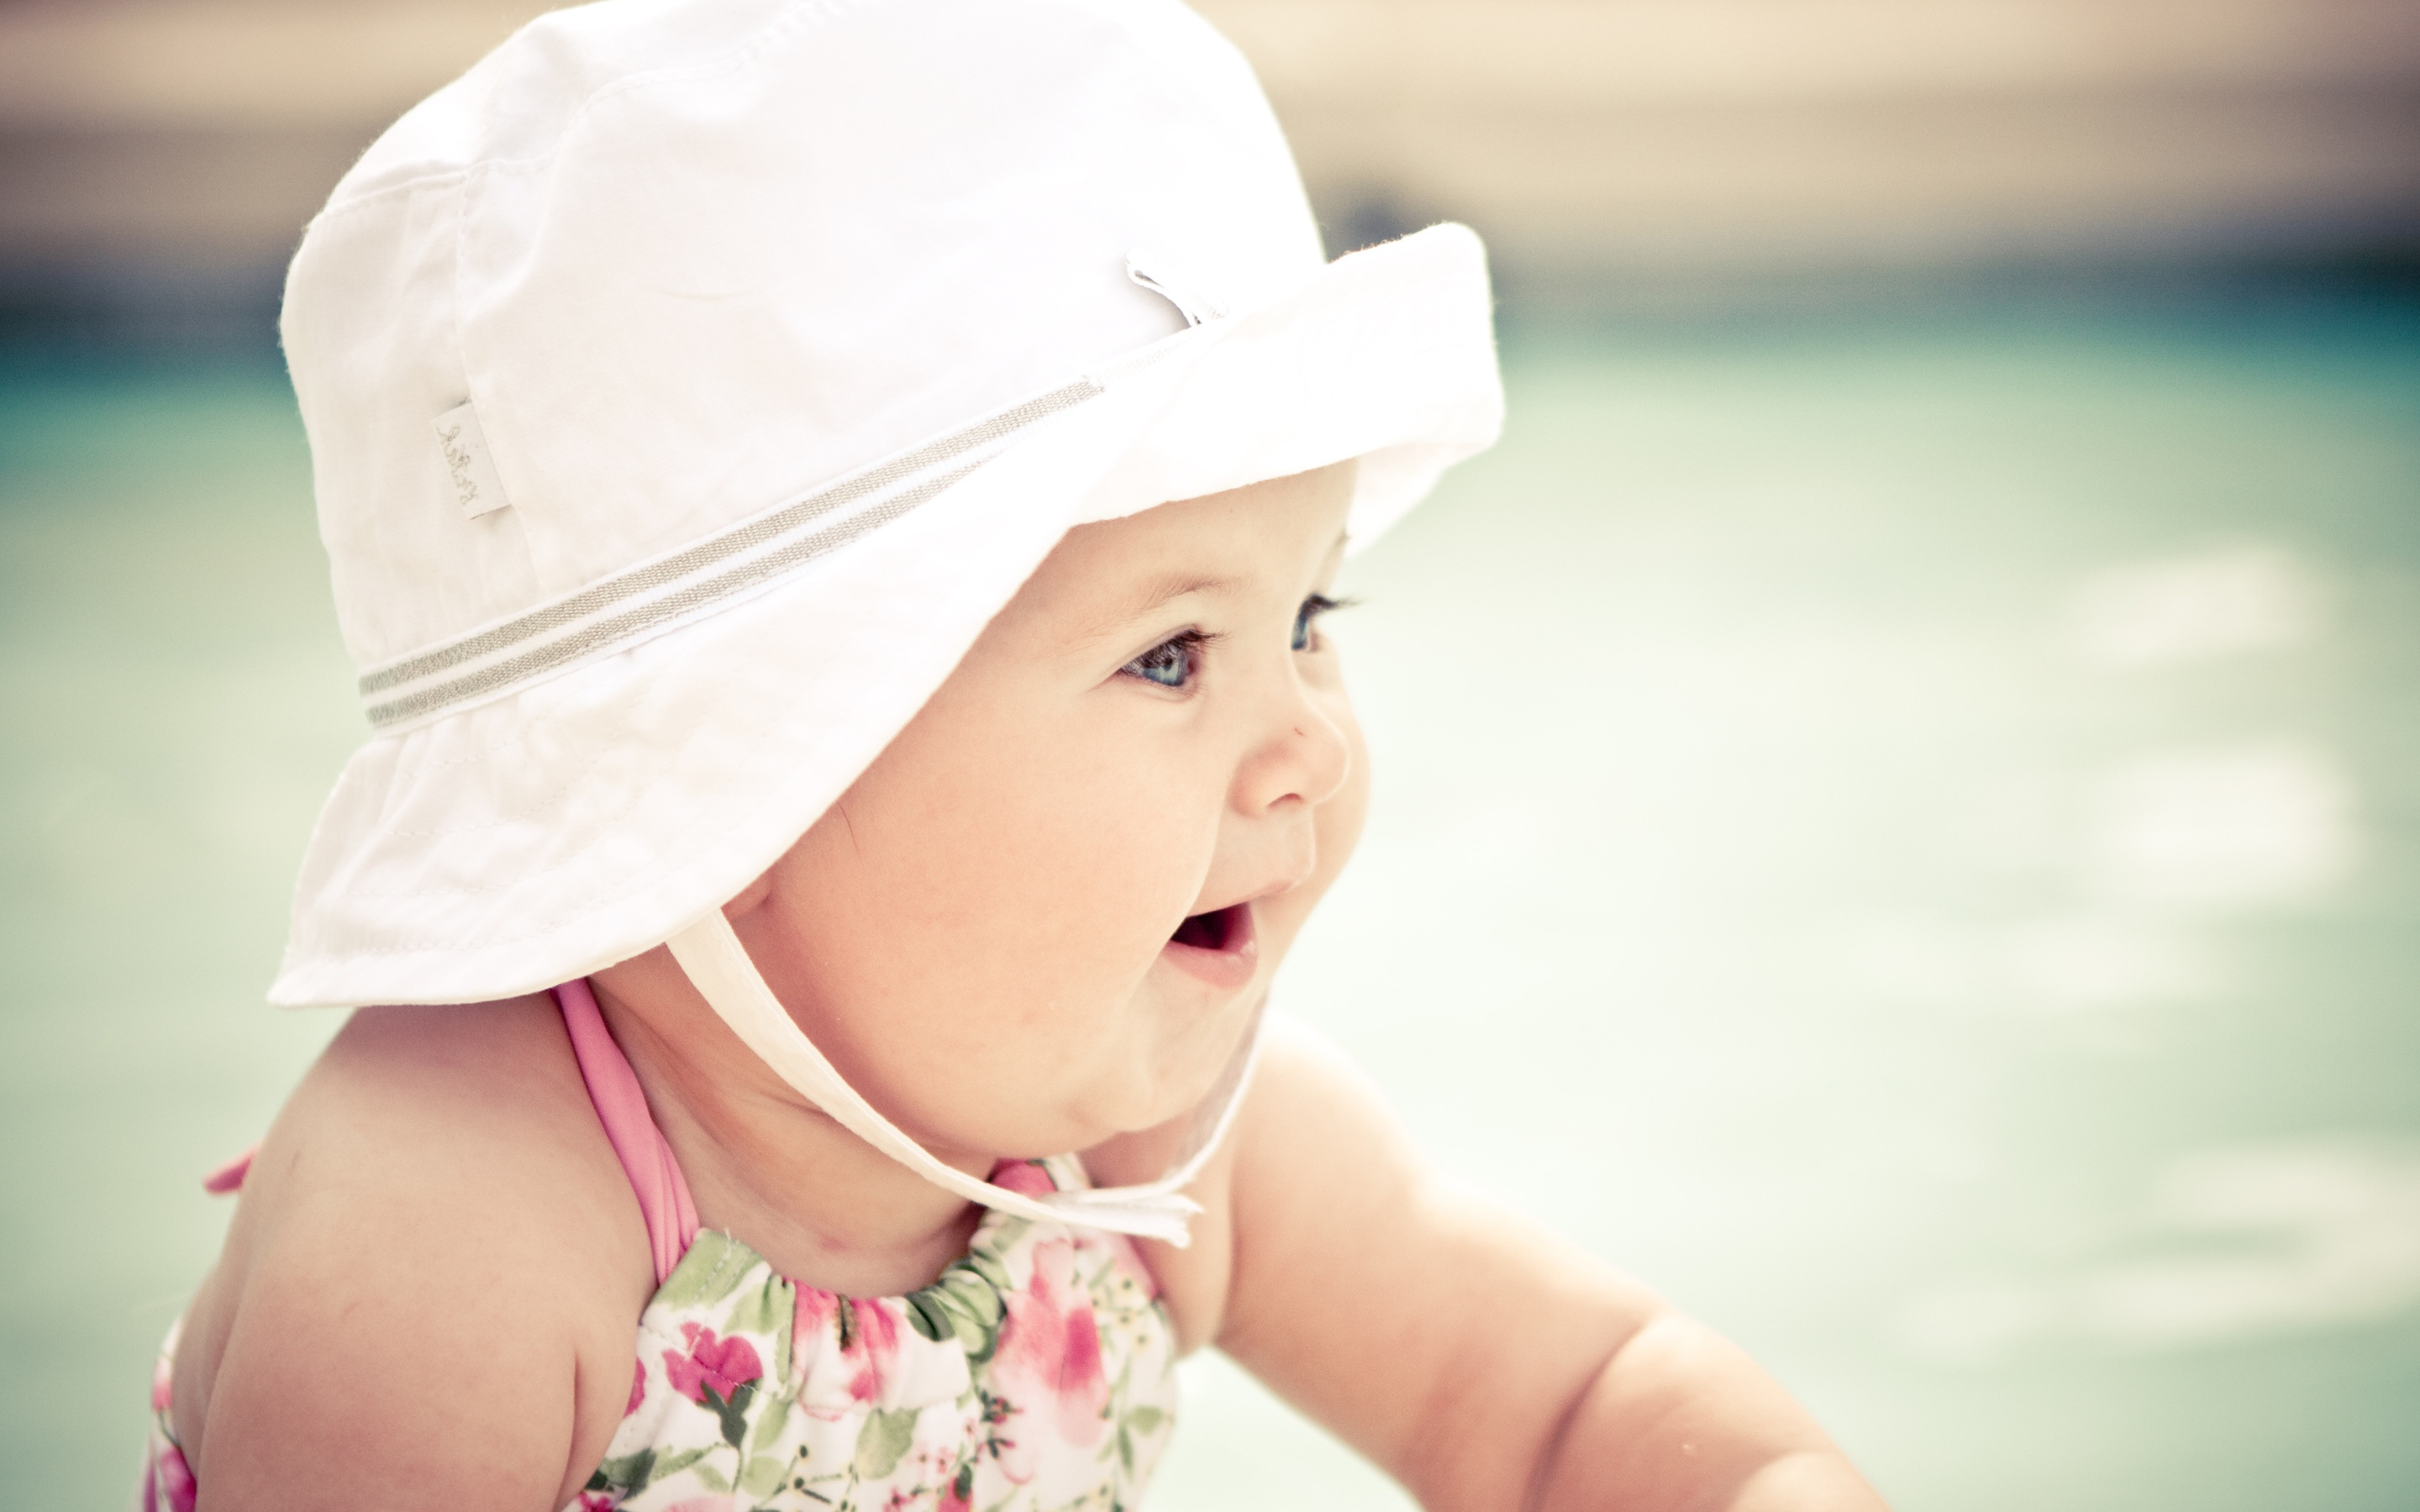 cute smiling baby high definition wallpapers iphone pics